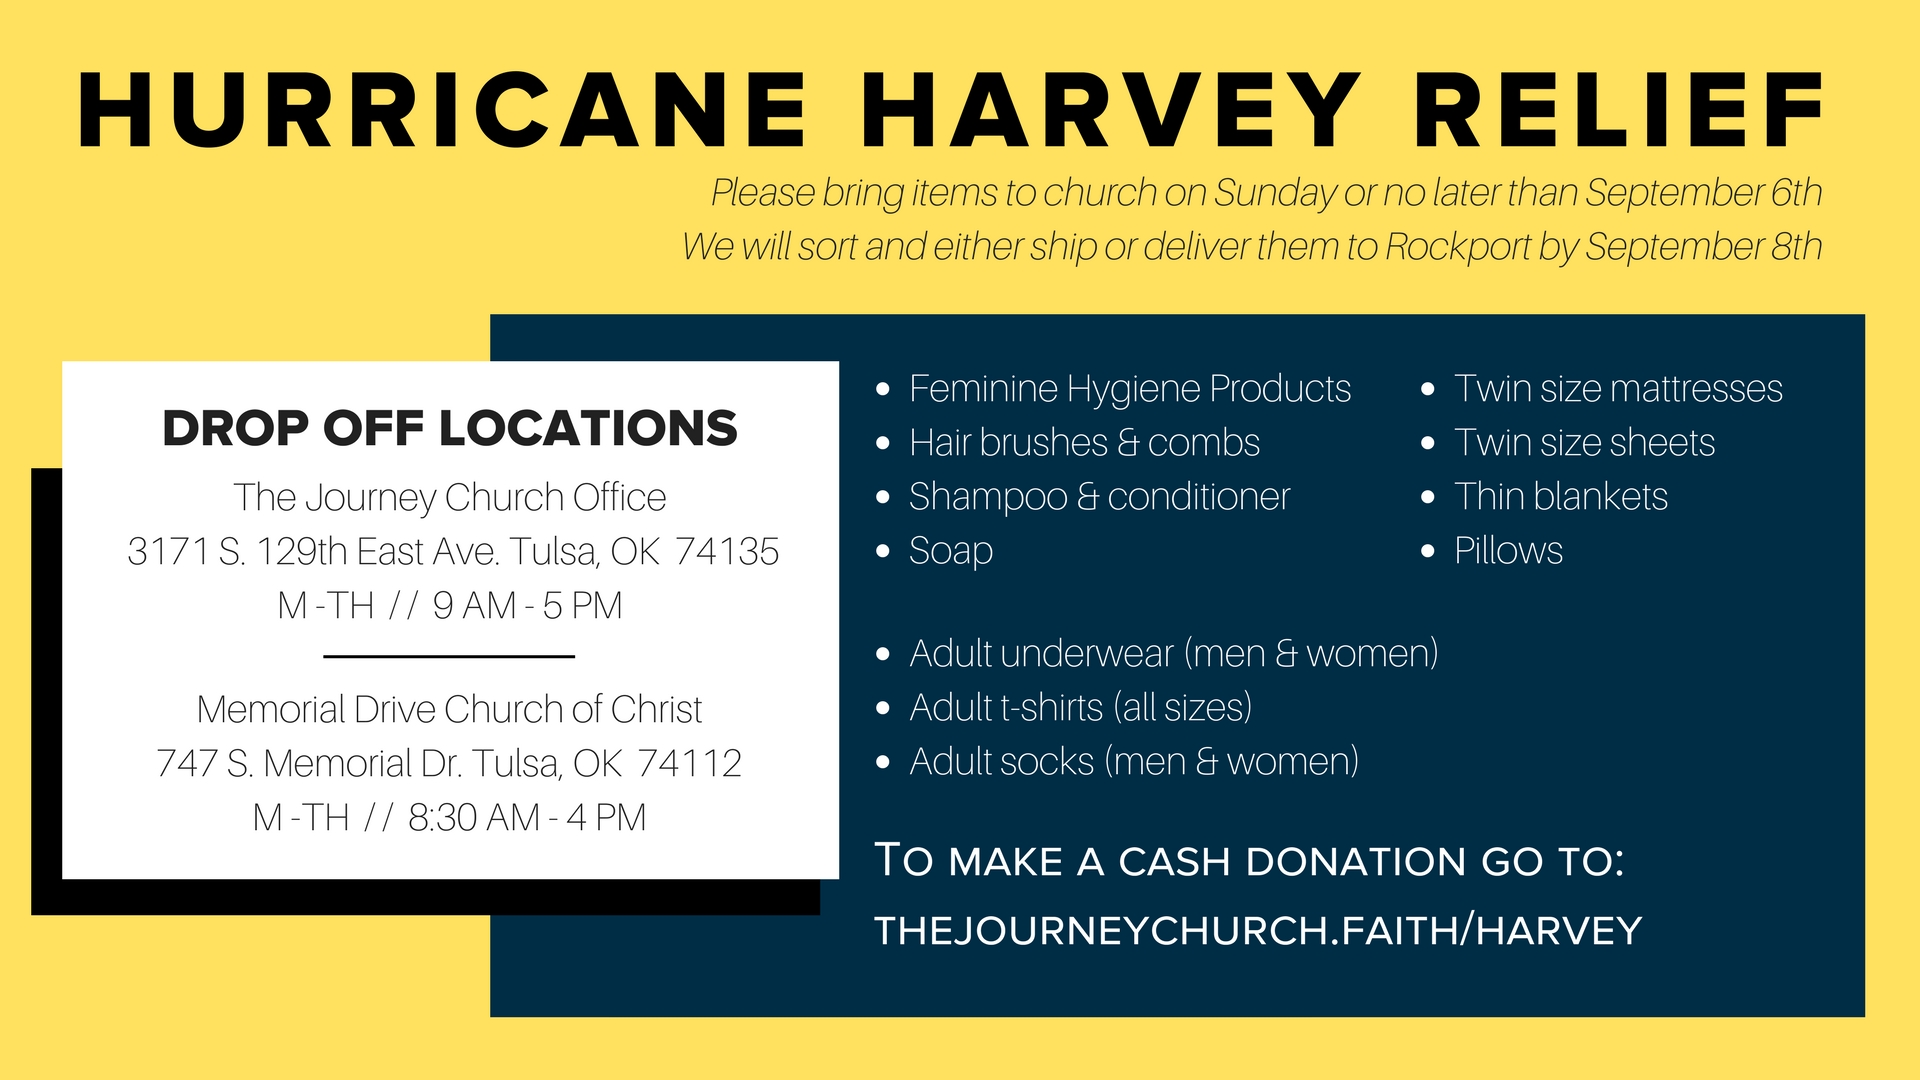 Hurricane Harvey Relief - The Journey contacted the police department in Rockport, Texas and have a list of needed items for first responders. View the list and drop off sites and times here. Please help us spread the word by sharing this post! If you'd like to make a cash donation go to:  https://www.thejourneychurch.faith/harvey